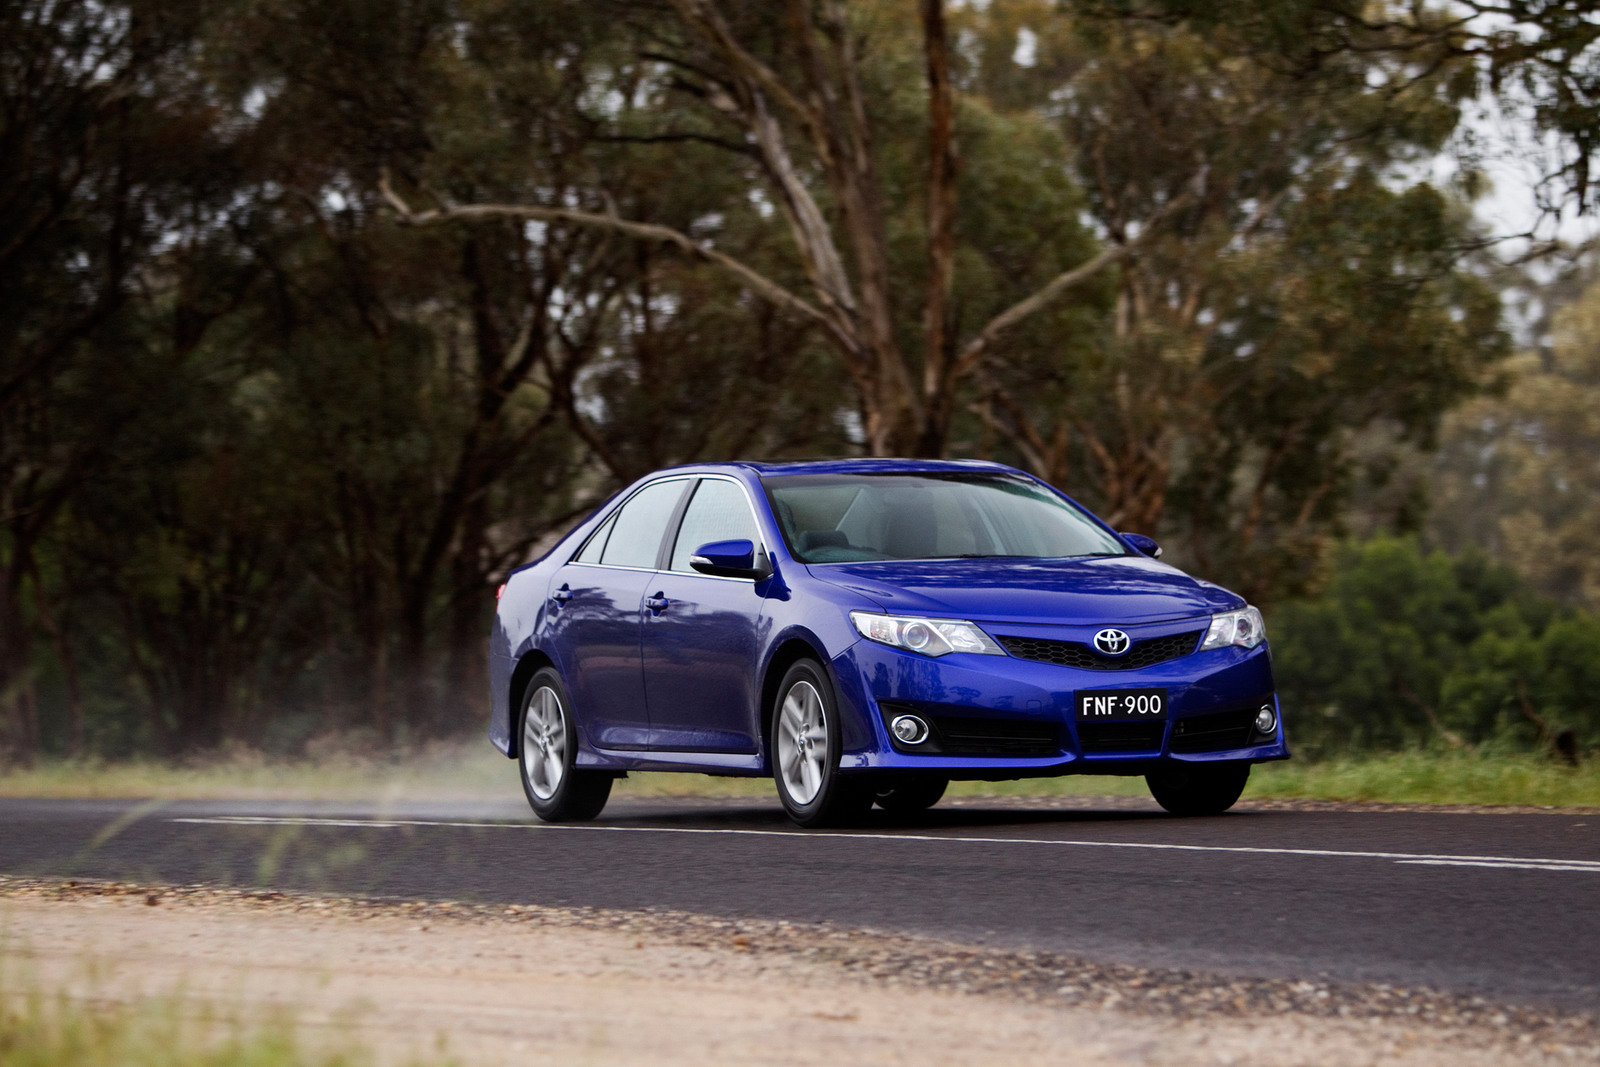 brand new toyota camry price in australia yaris trd sportivo bekas 2012 for unveiled autoevolution